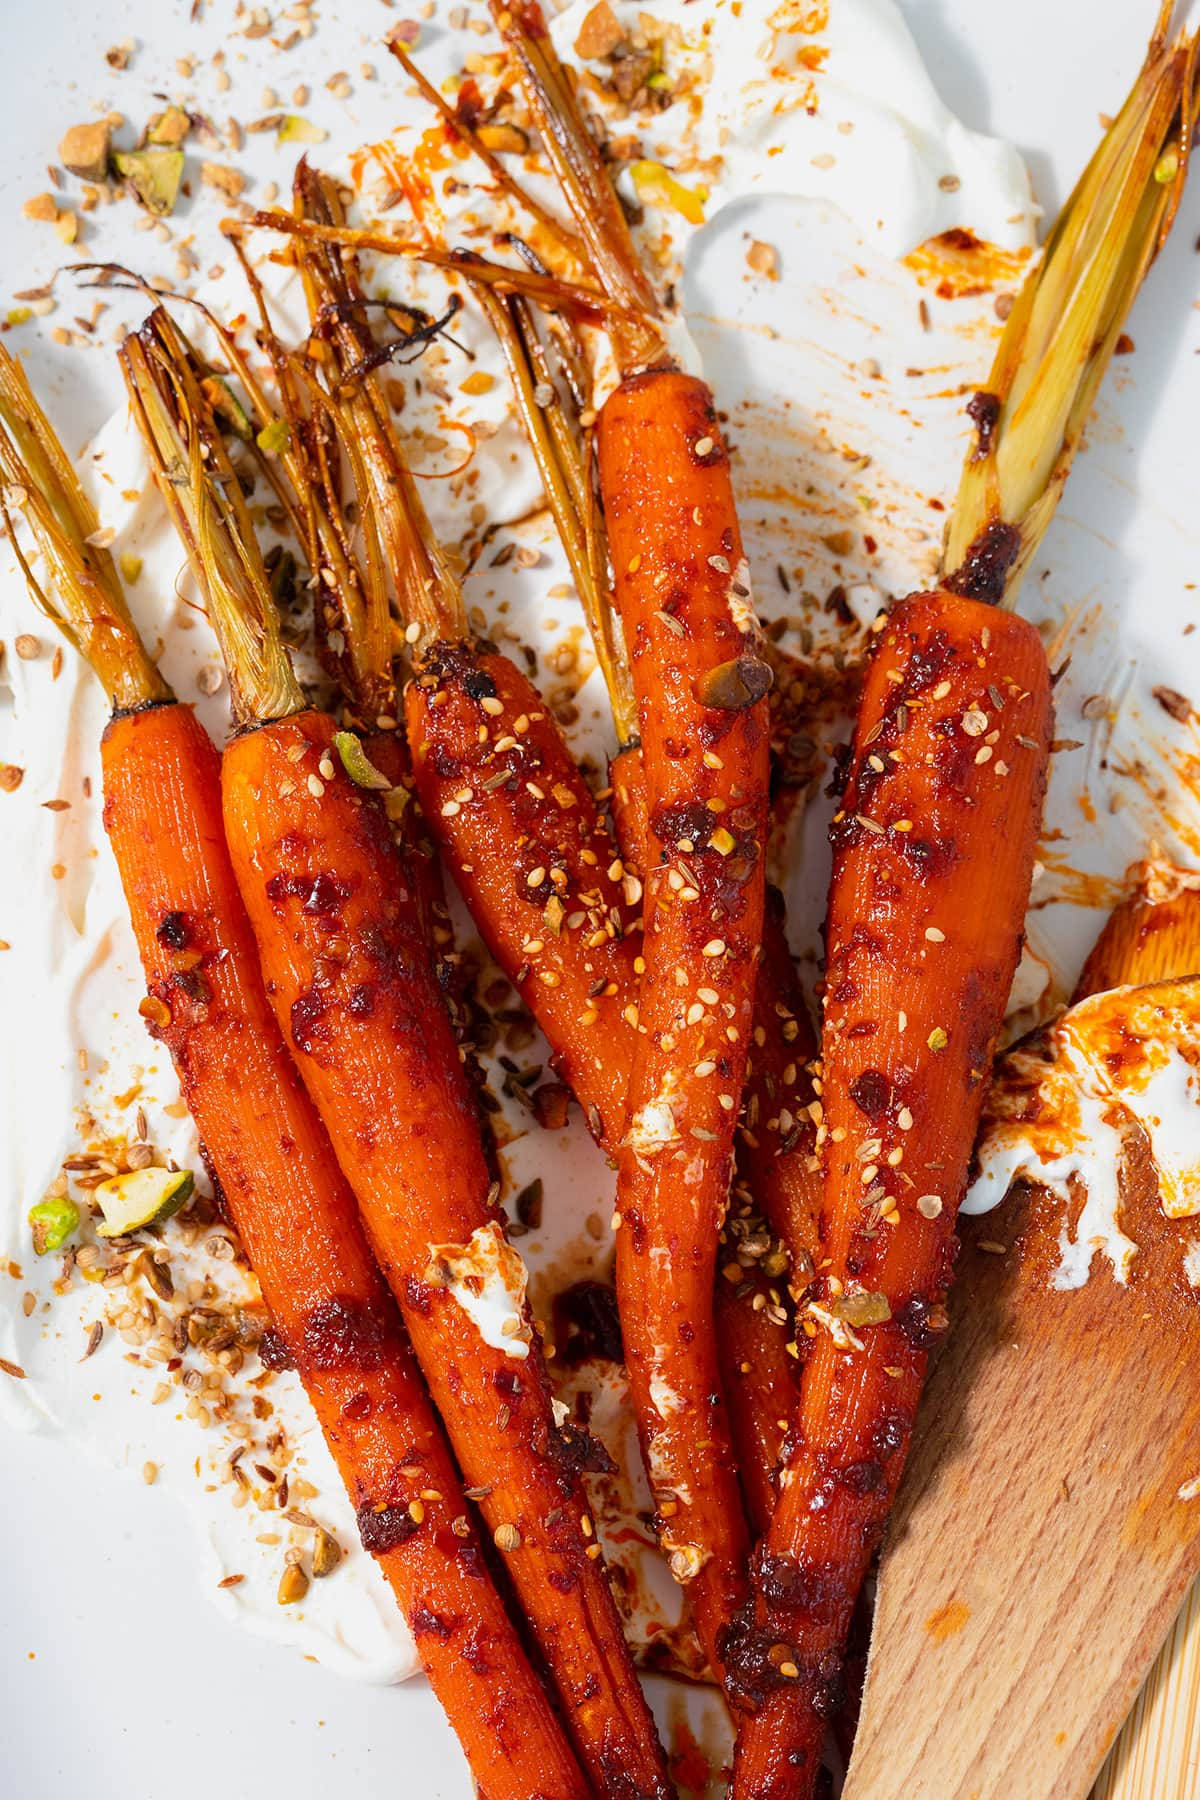 A tight close up of Harissa roasted carrots on a white serving platter with labneh spread under the carrots. Sprinkled with dukkah. Two wooden spoons messy with labneh and harissa leaning on the right edge of the platter. Plate on a white and turquoise tile table.